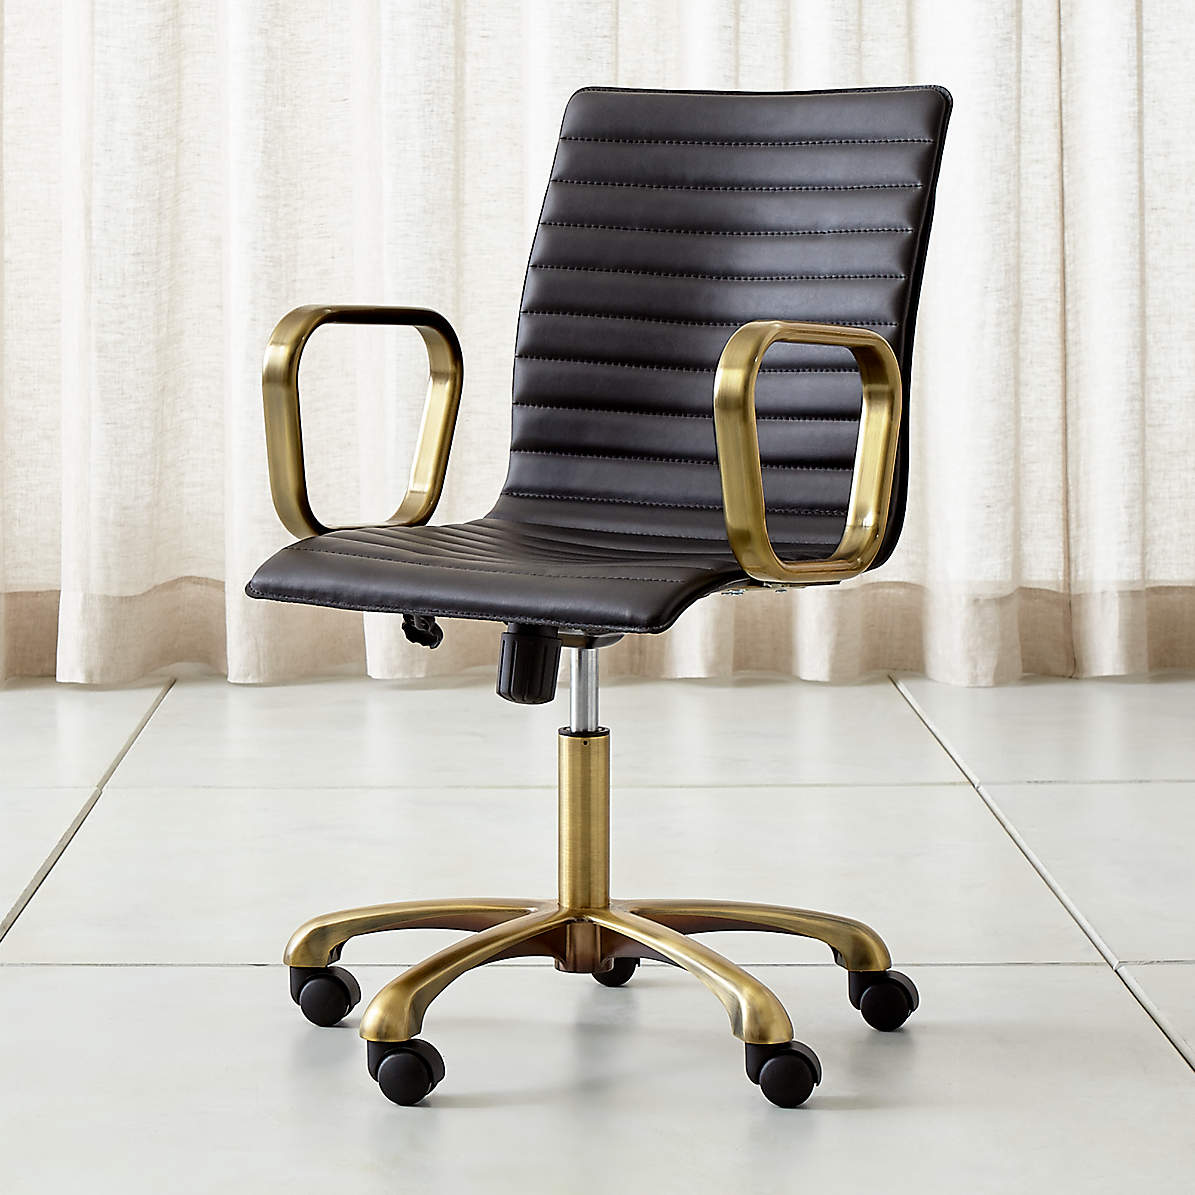 Ripple Black Leather Office Chair With Brass Frame Reviews Crate And Barrel